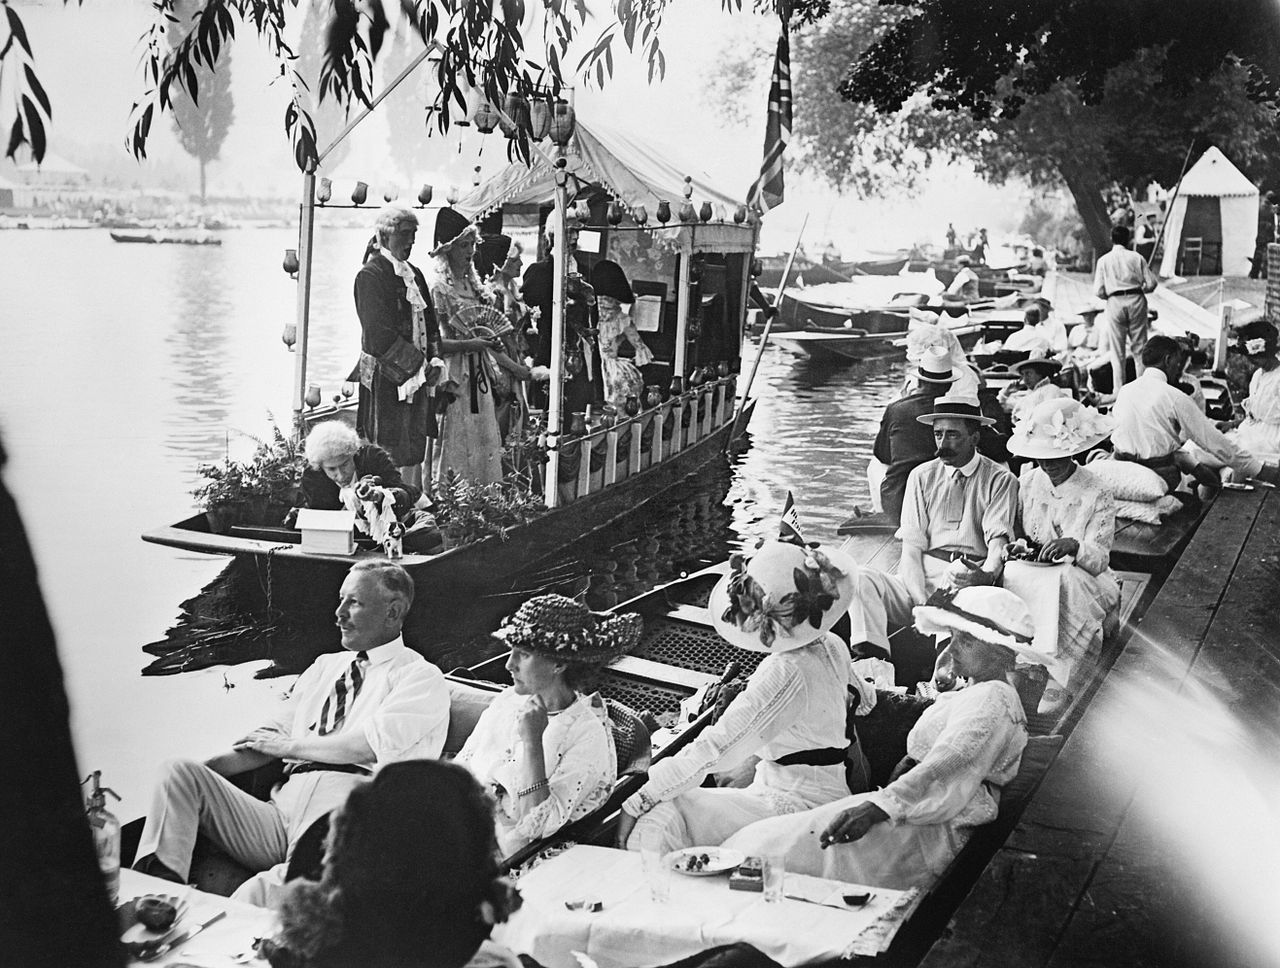 The annual summer regatta at Henley on the River Thames shortly before the outbreak of the First World War